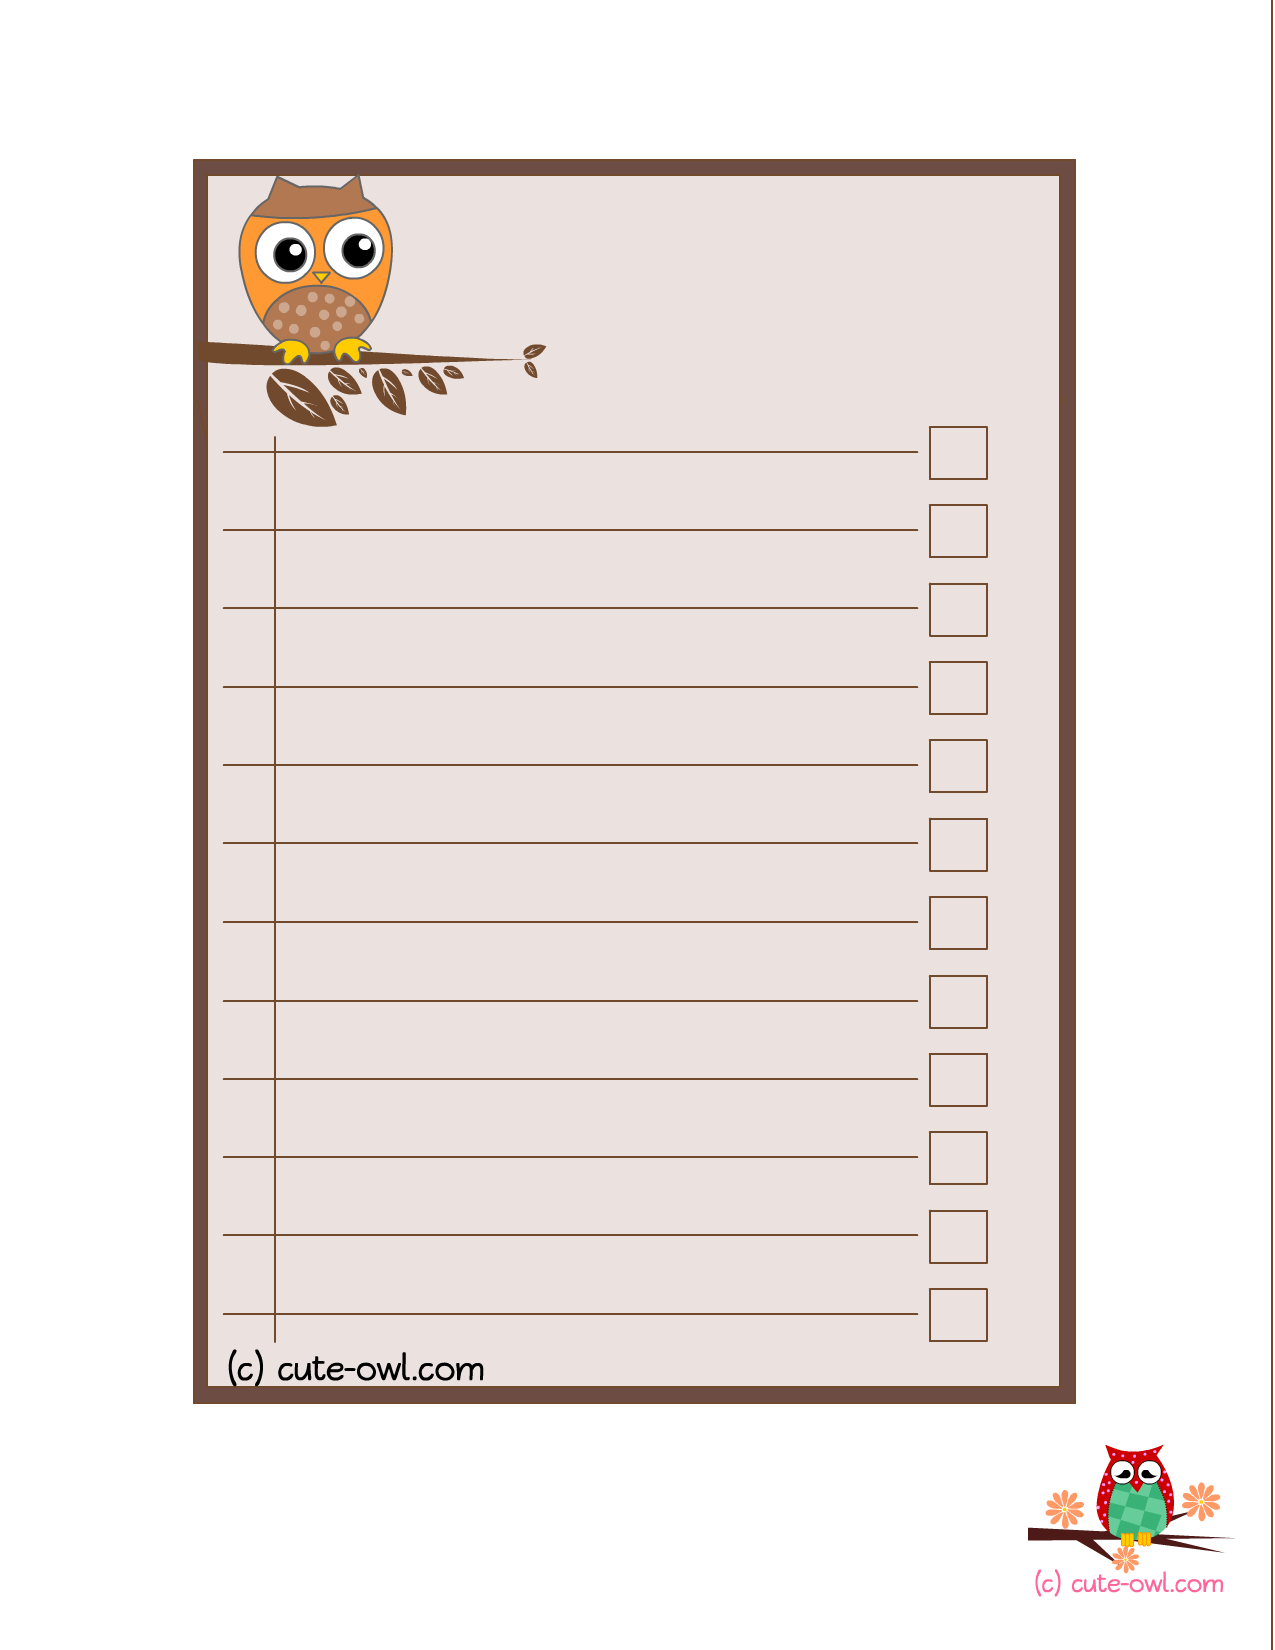 7 Images of Owl Printable To Do List